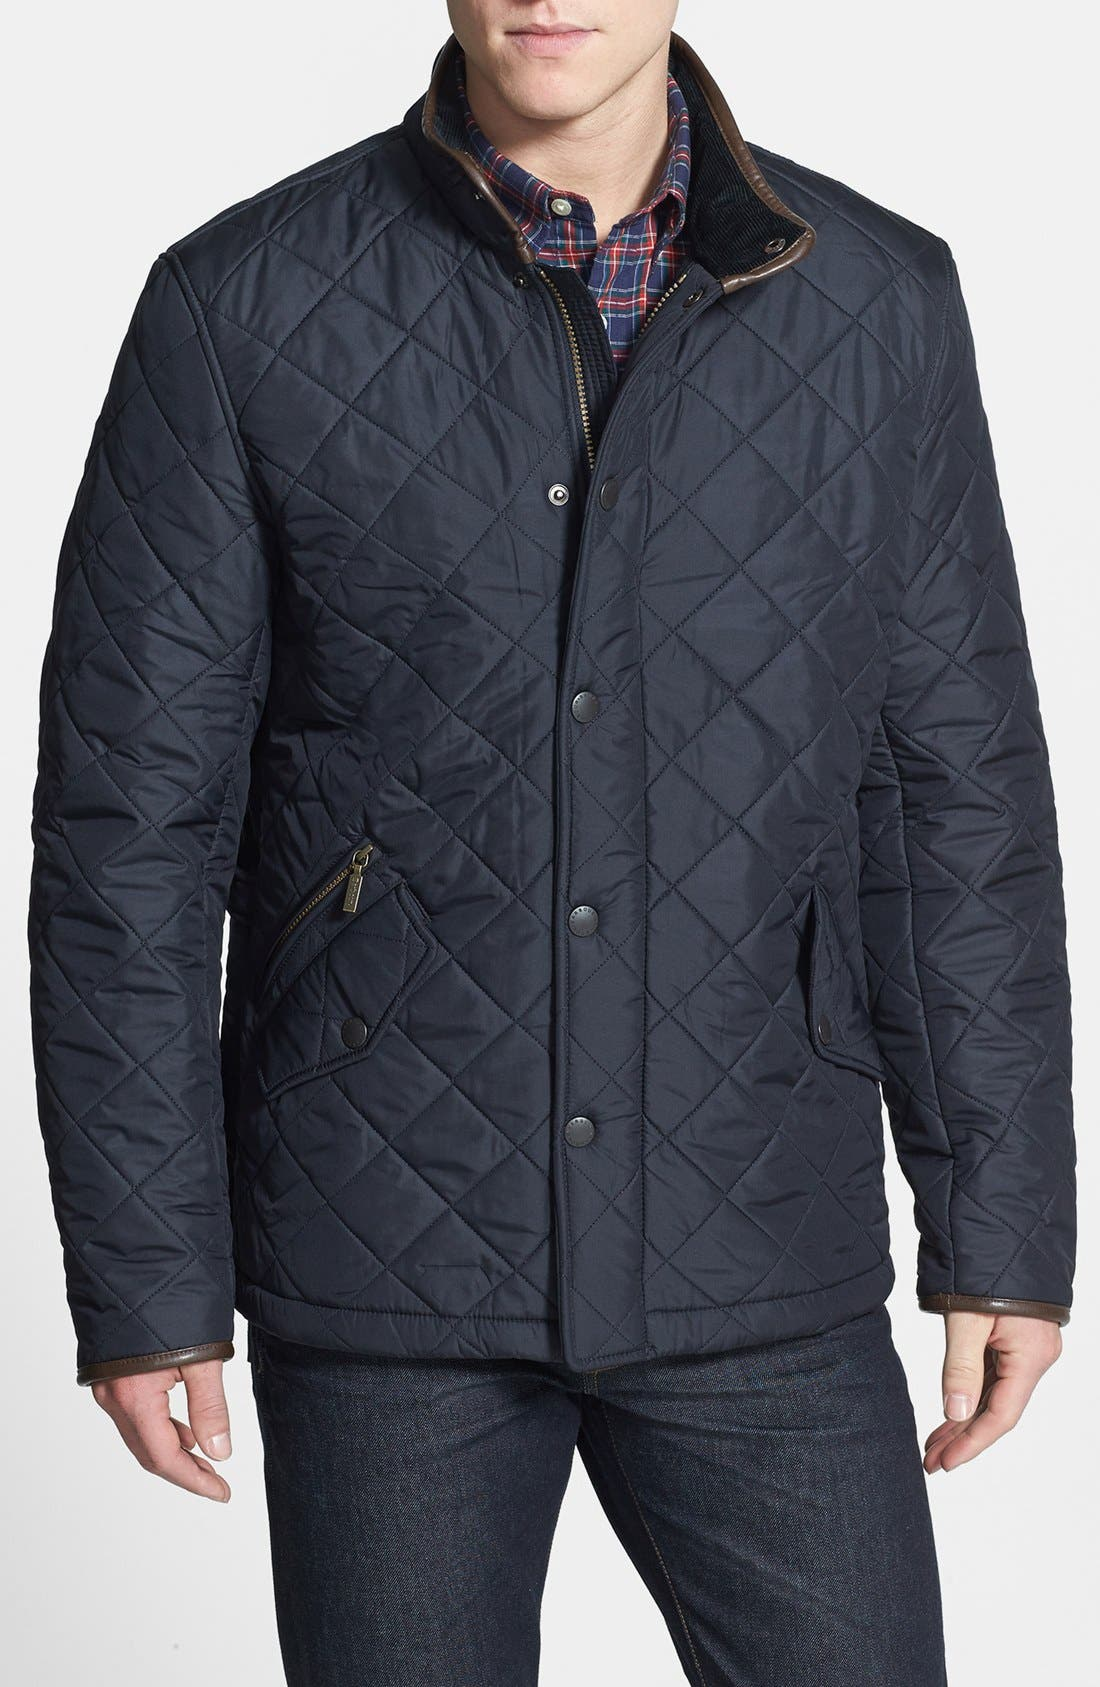 Main Image - Barbour 'Powell' Quilted Jacket